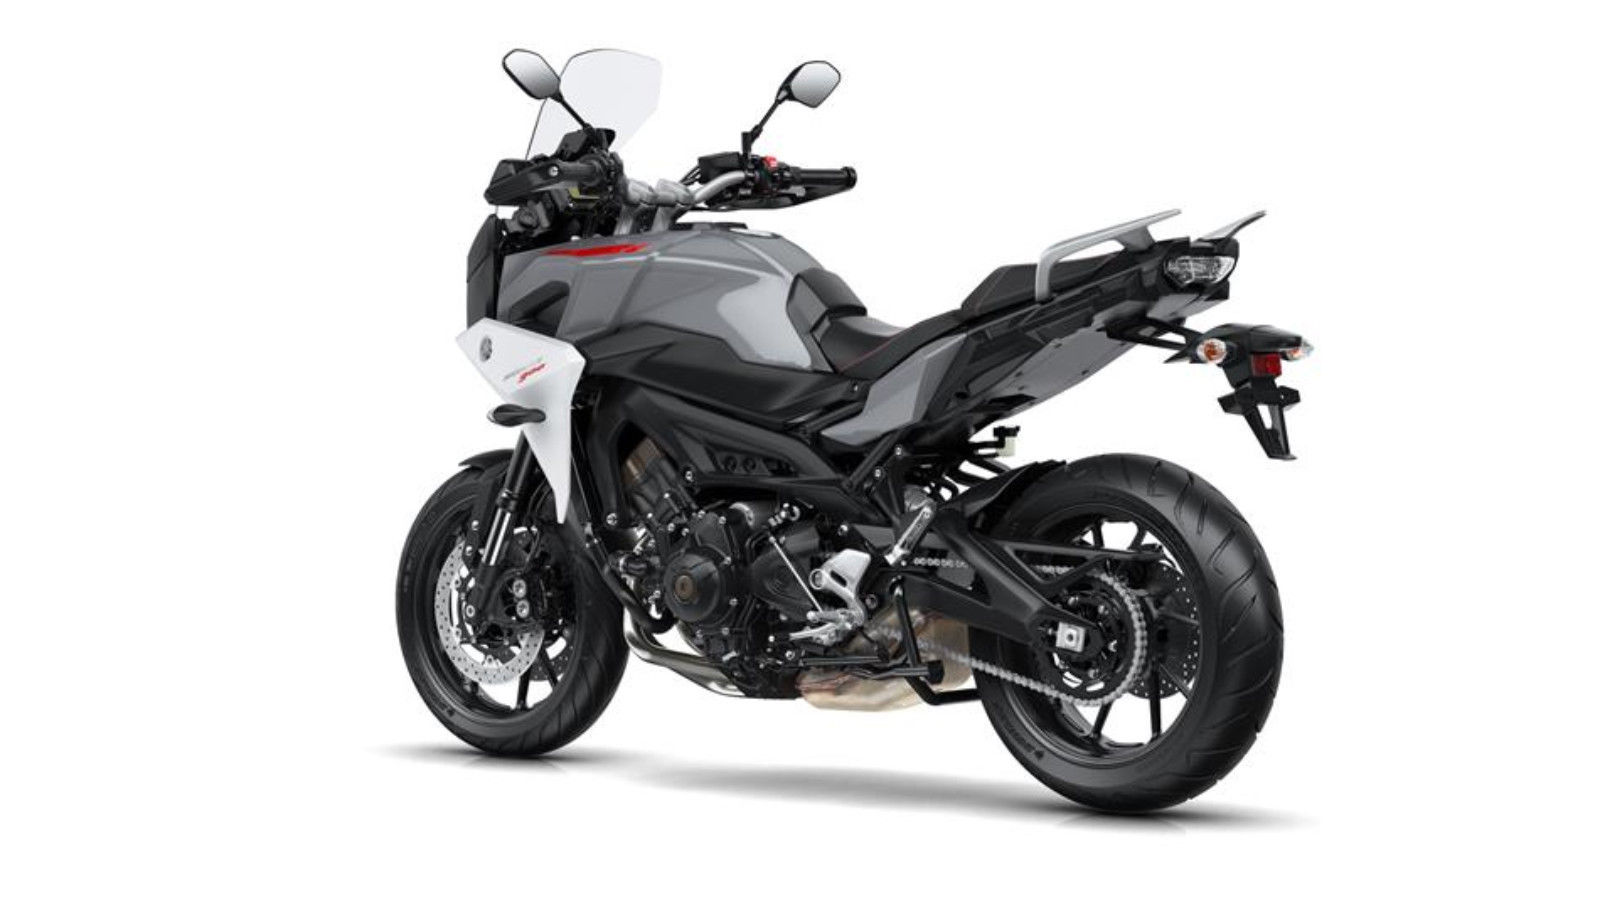 MT-09 ABS Modell 2018 SOFORT LIEFERBAR!